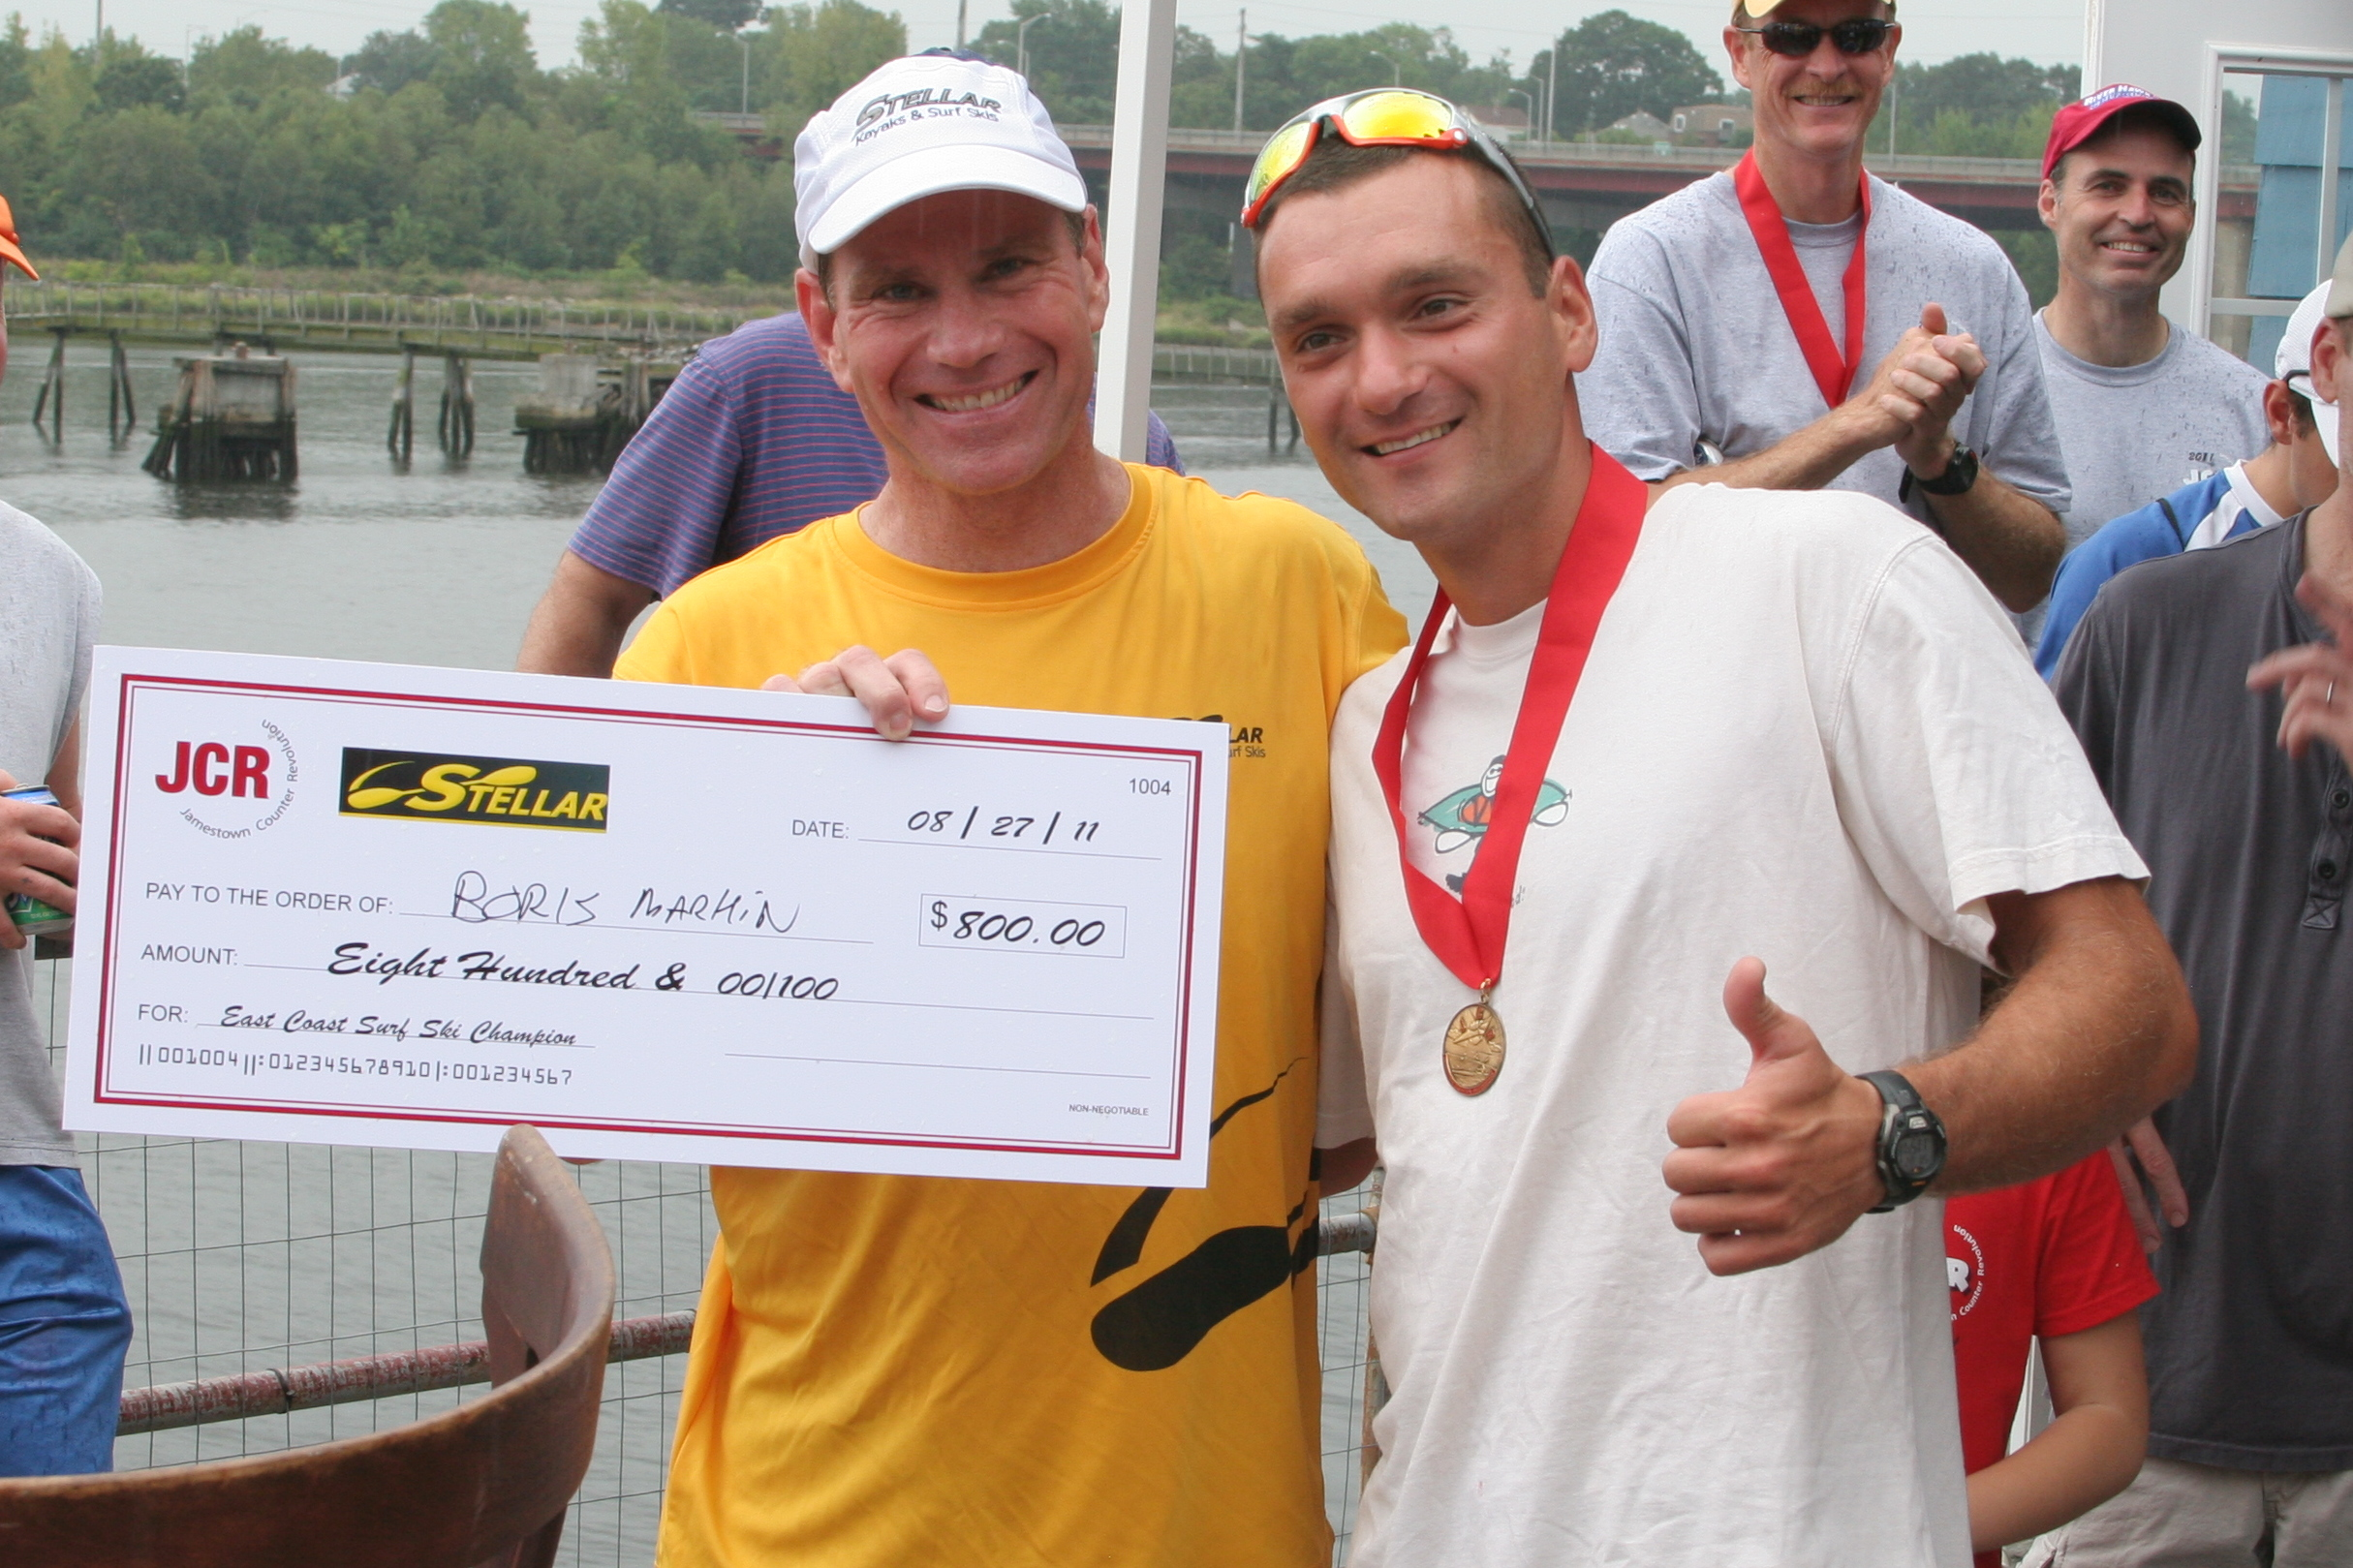 Wesley Presenting Check to Borys on behalf of Stellar at 2011 East Coast Championship